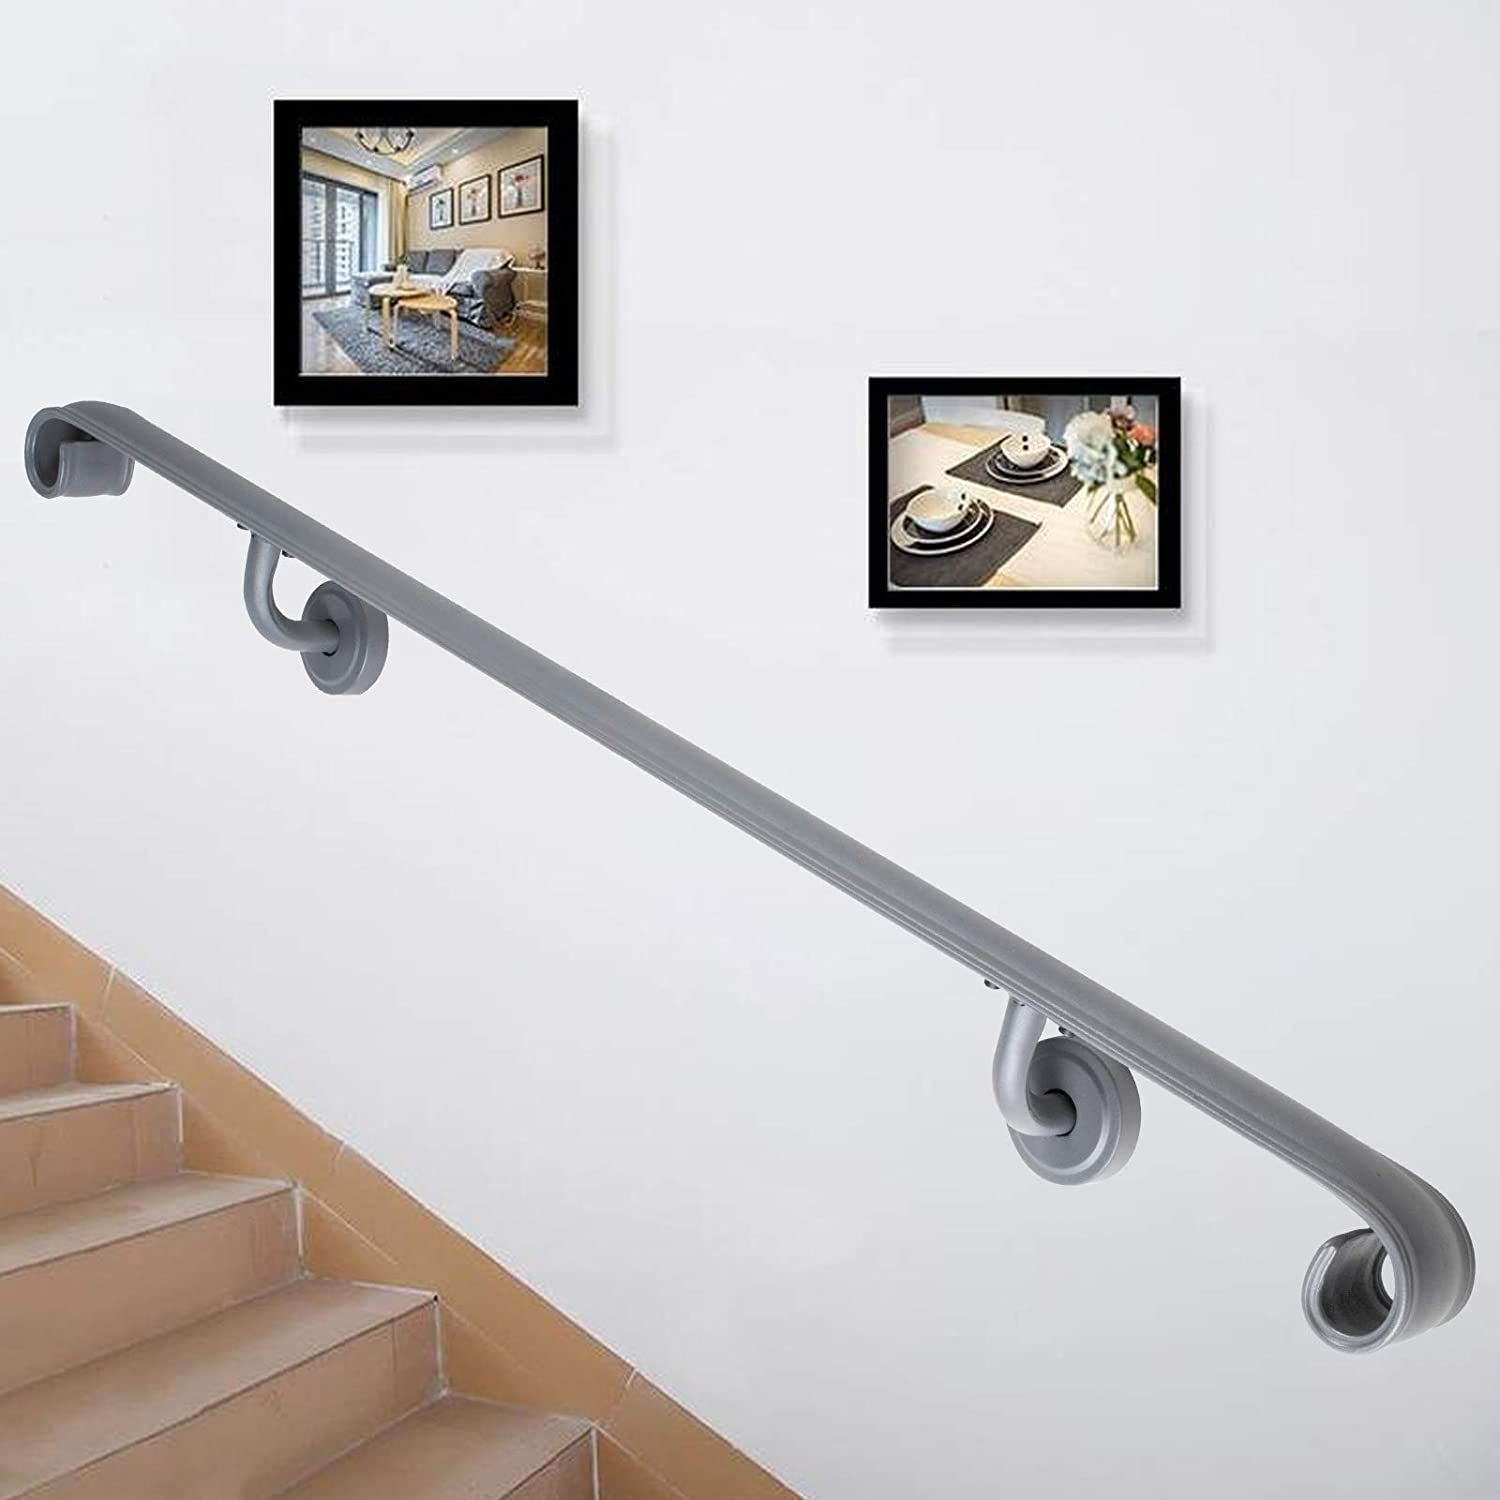 Happybuy Stair Handrail Three Step Stair Rail 24ft Length Modern Handrails  for Stairs Gray Wrought Iron Indoor Handrail for Stairs 24lbs Capacity  Wall